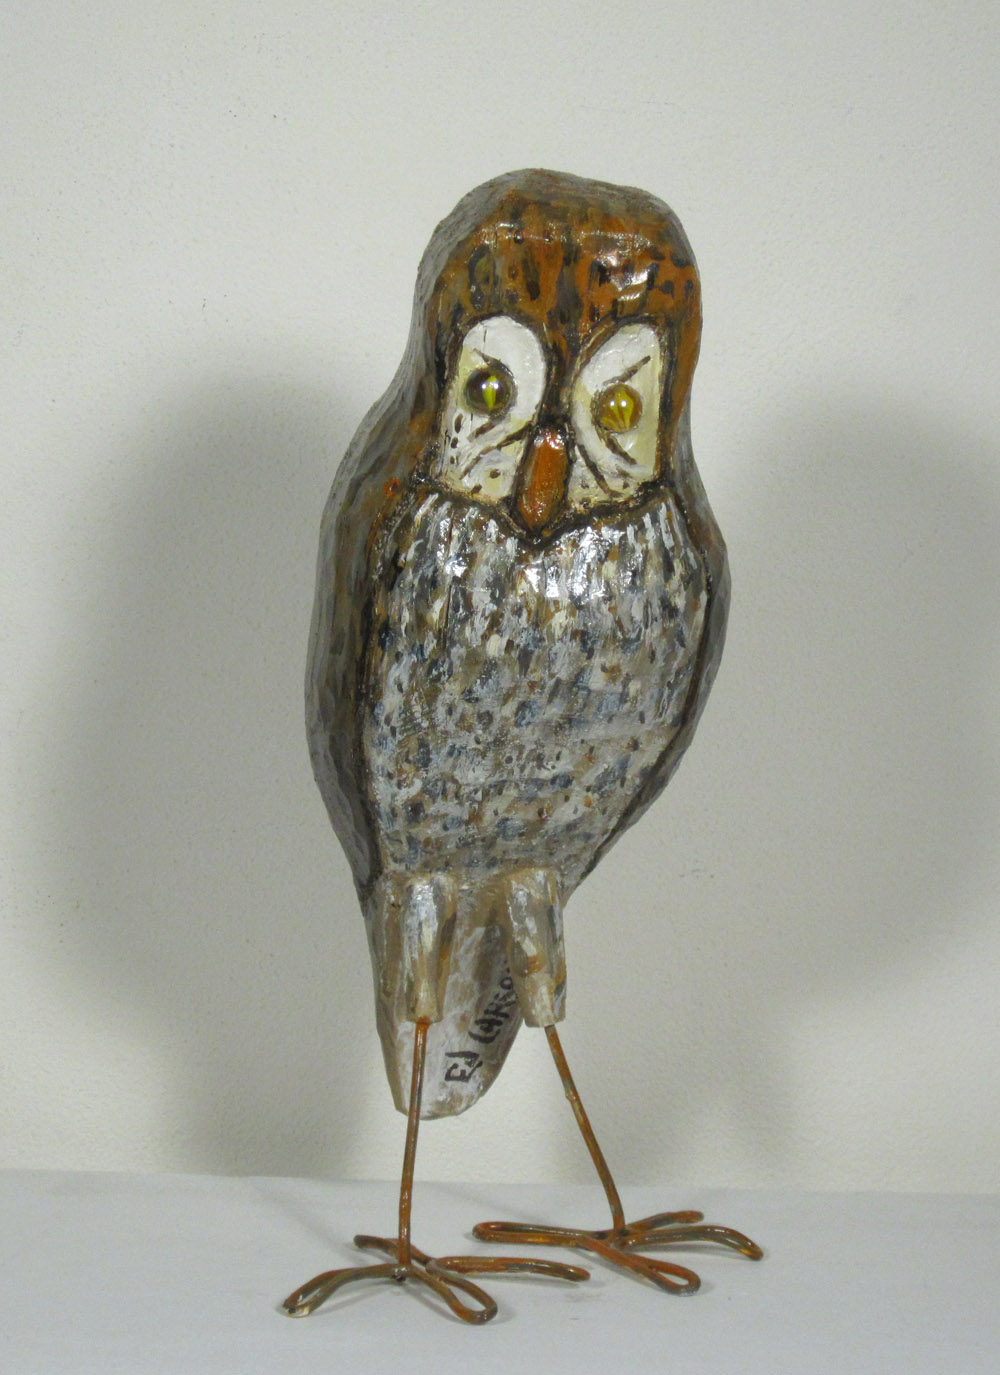 OWL II, Painted Wood, Metal and Marbles, 15 x 8 x 5""